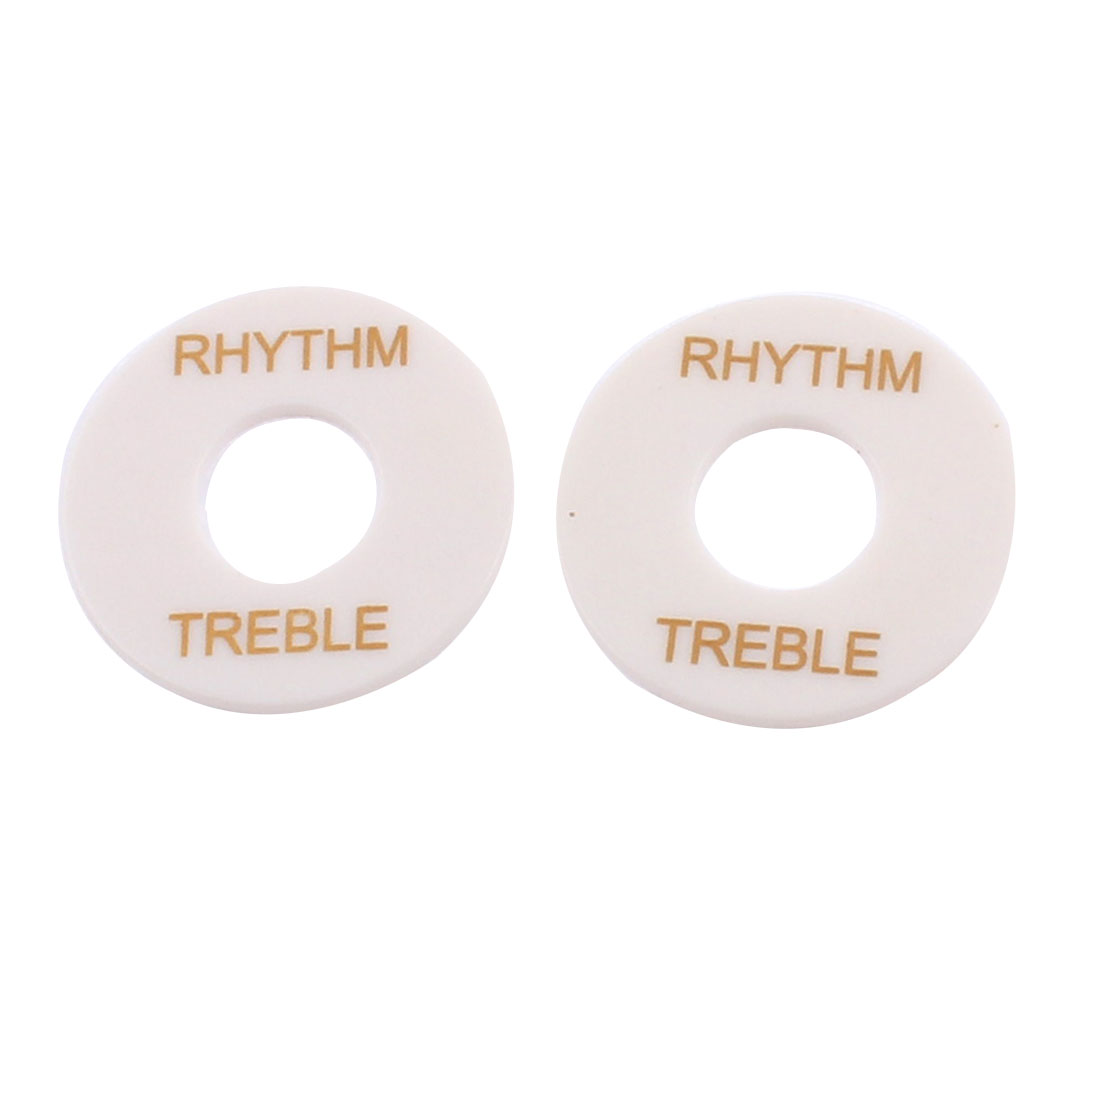 Plastic Electric Guitar Toggle Switch Rhythm Treble Plate Washer Ring White 2pcs